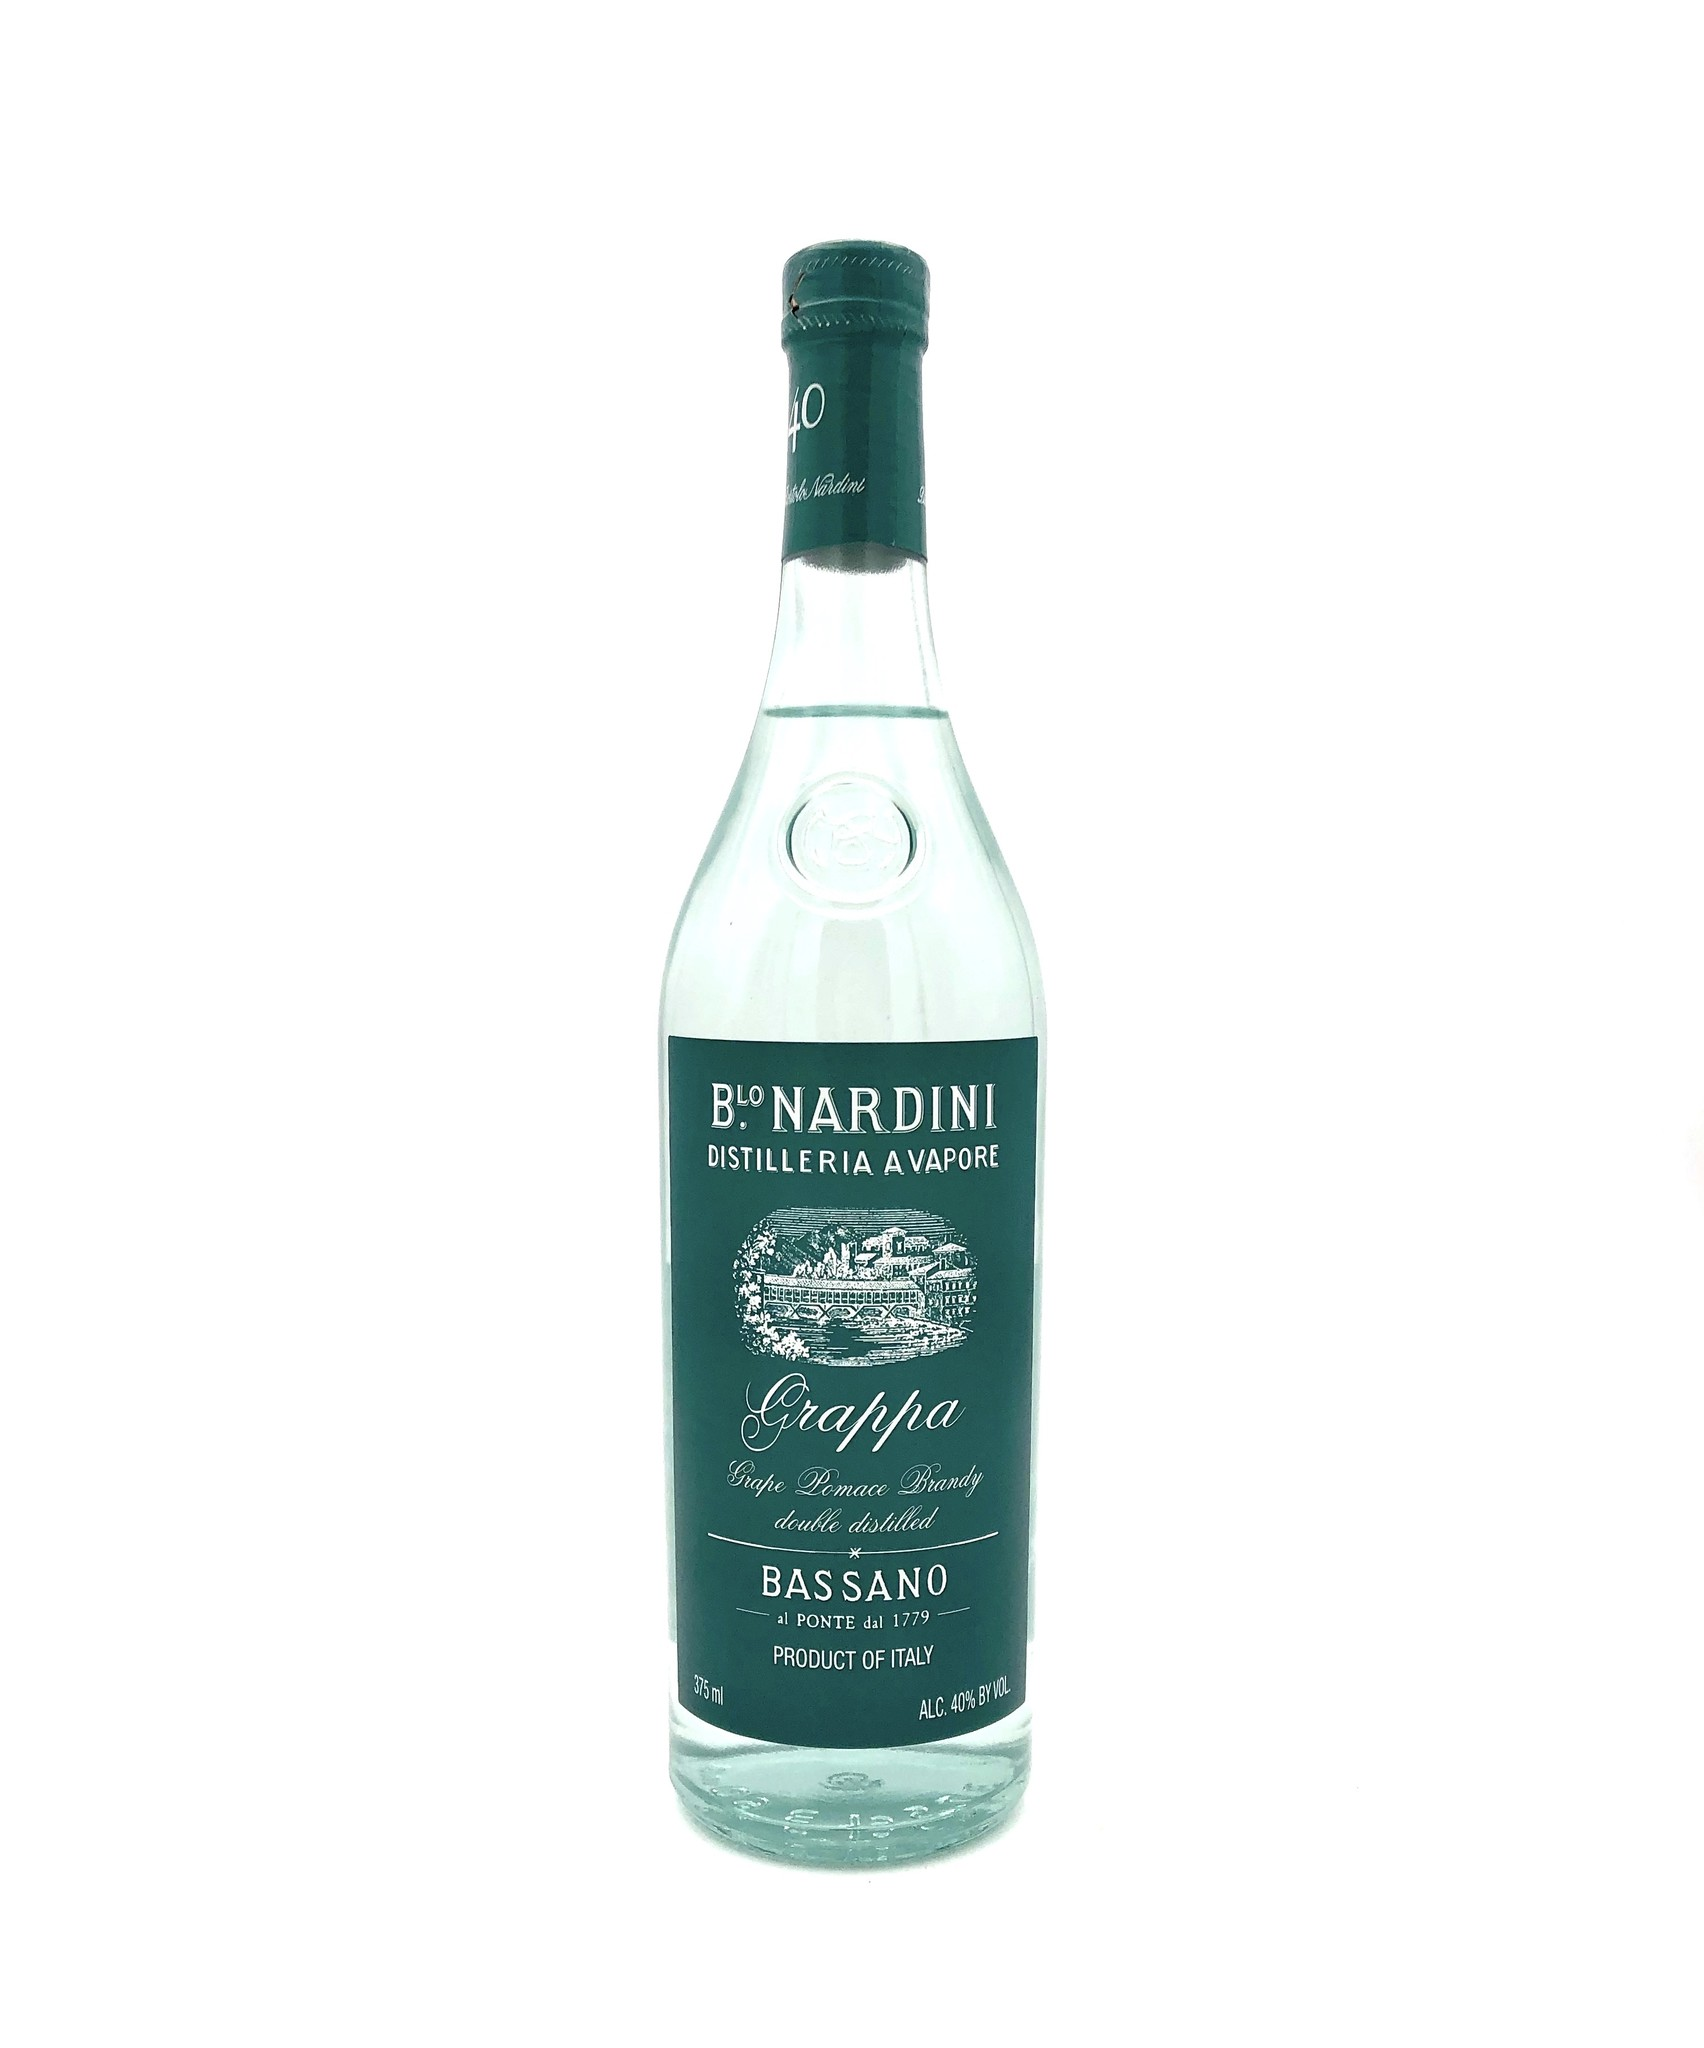 Grappa 375mL Nardini